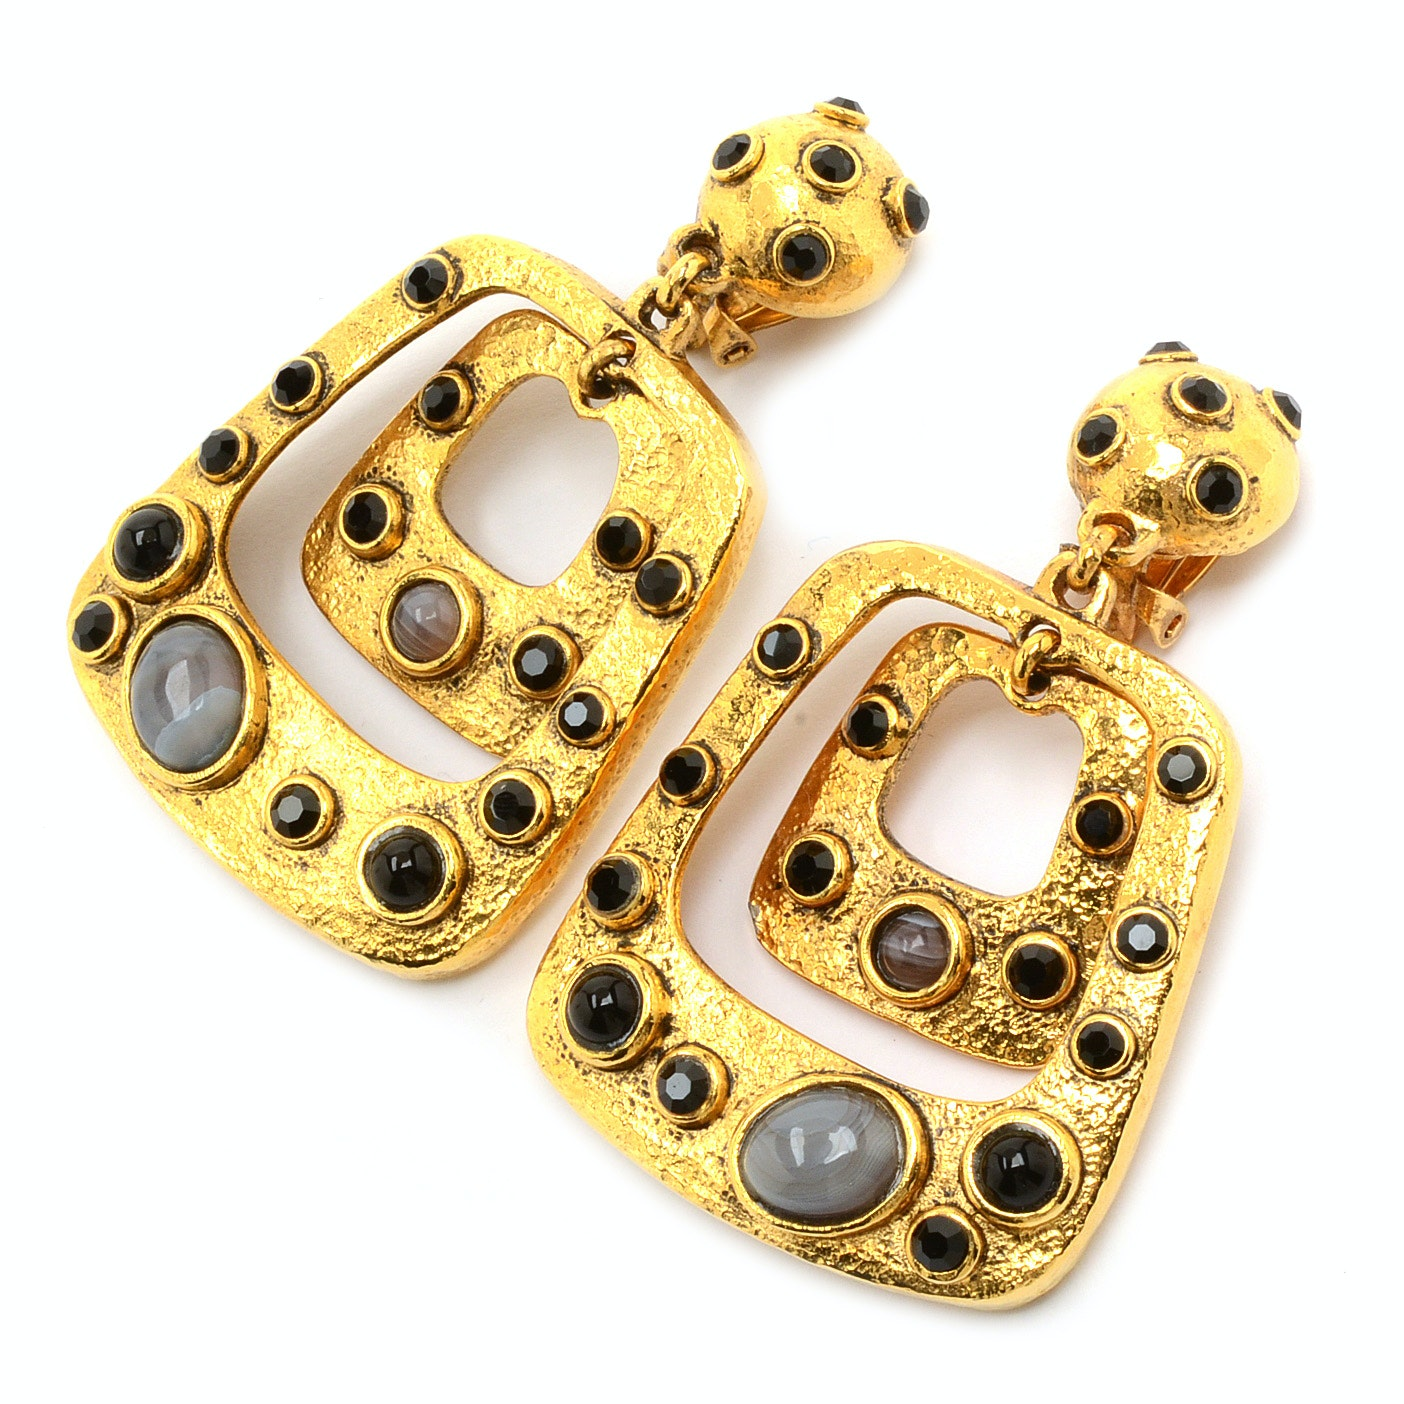 Jose & Maria Barrera 24K Gold Plated Drop Clip-On Earrings with Bezel Set Polished Cabochons and Faceted Crystals